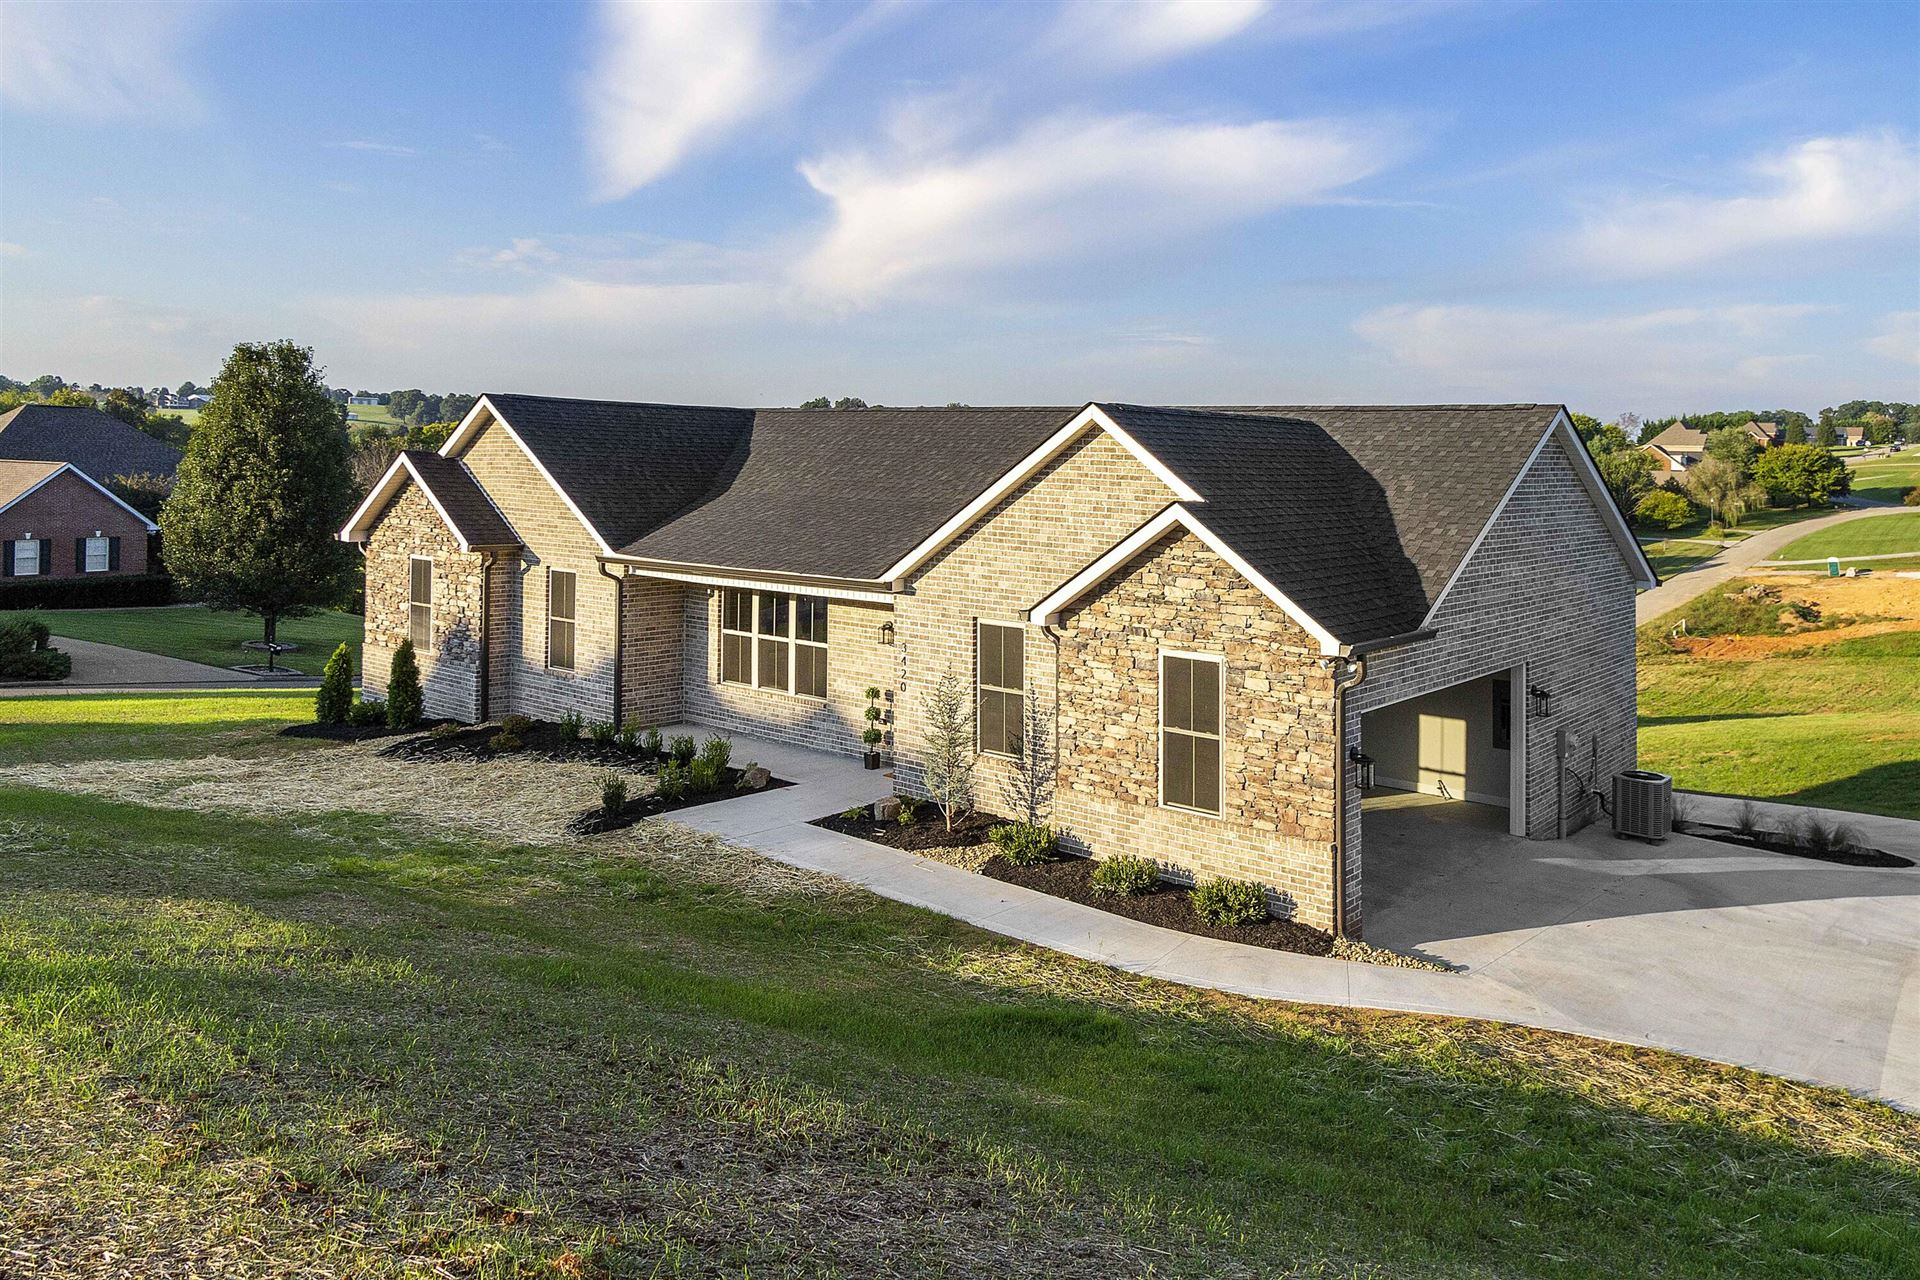 Photo of 3420 Colby Cove Drive, Maryville, TN 37801 (MLS # 1169775)